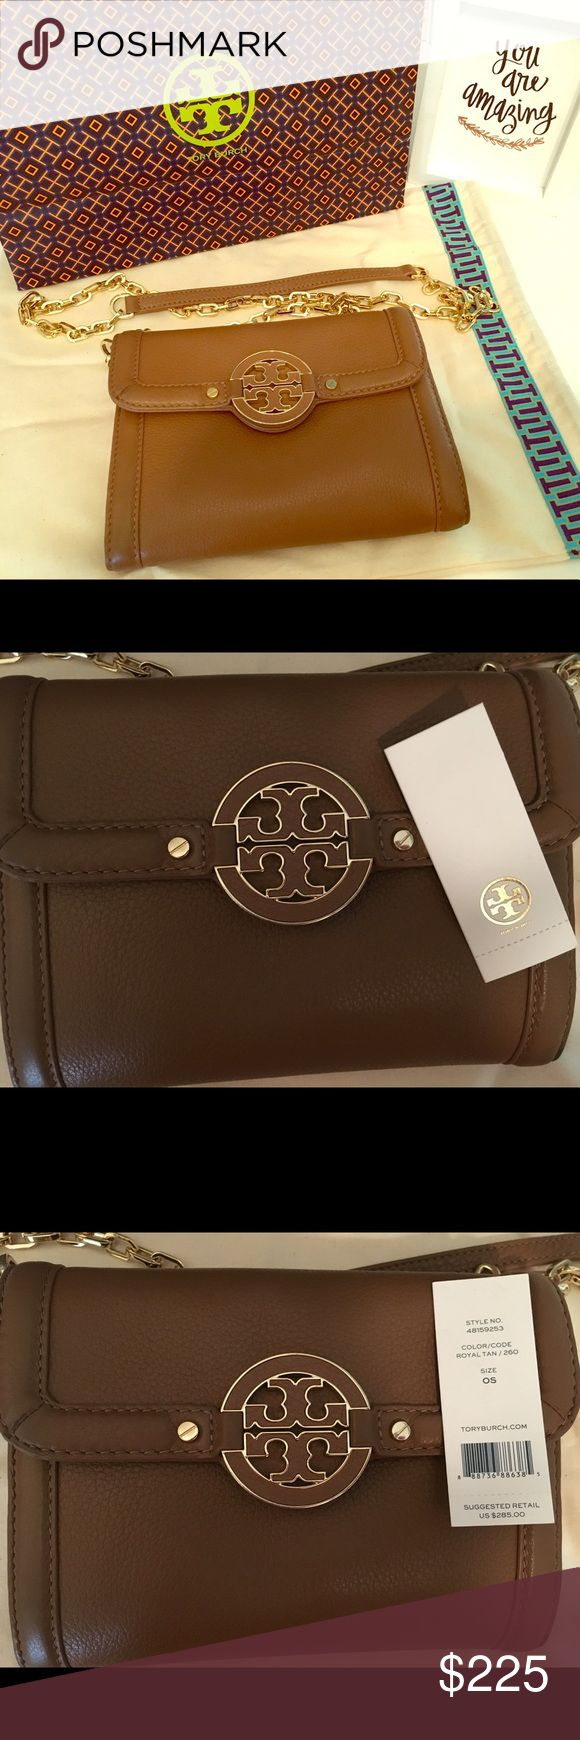 Tory burch cross body bag Beautiful leather cross body bag. In excellent, like new condition with tags included. Beautiful gold chain that is removable so that it can be carried as a clutch. Magnetic closure. Dust bag and Tory shopping bag included. Tory Burch Bags Crossbody Bags